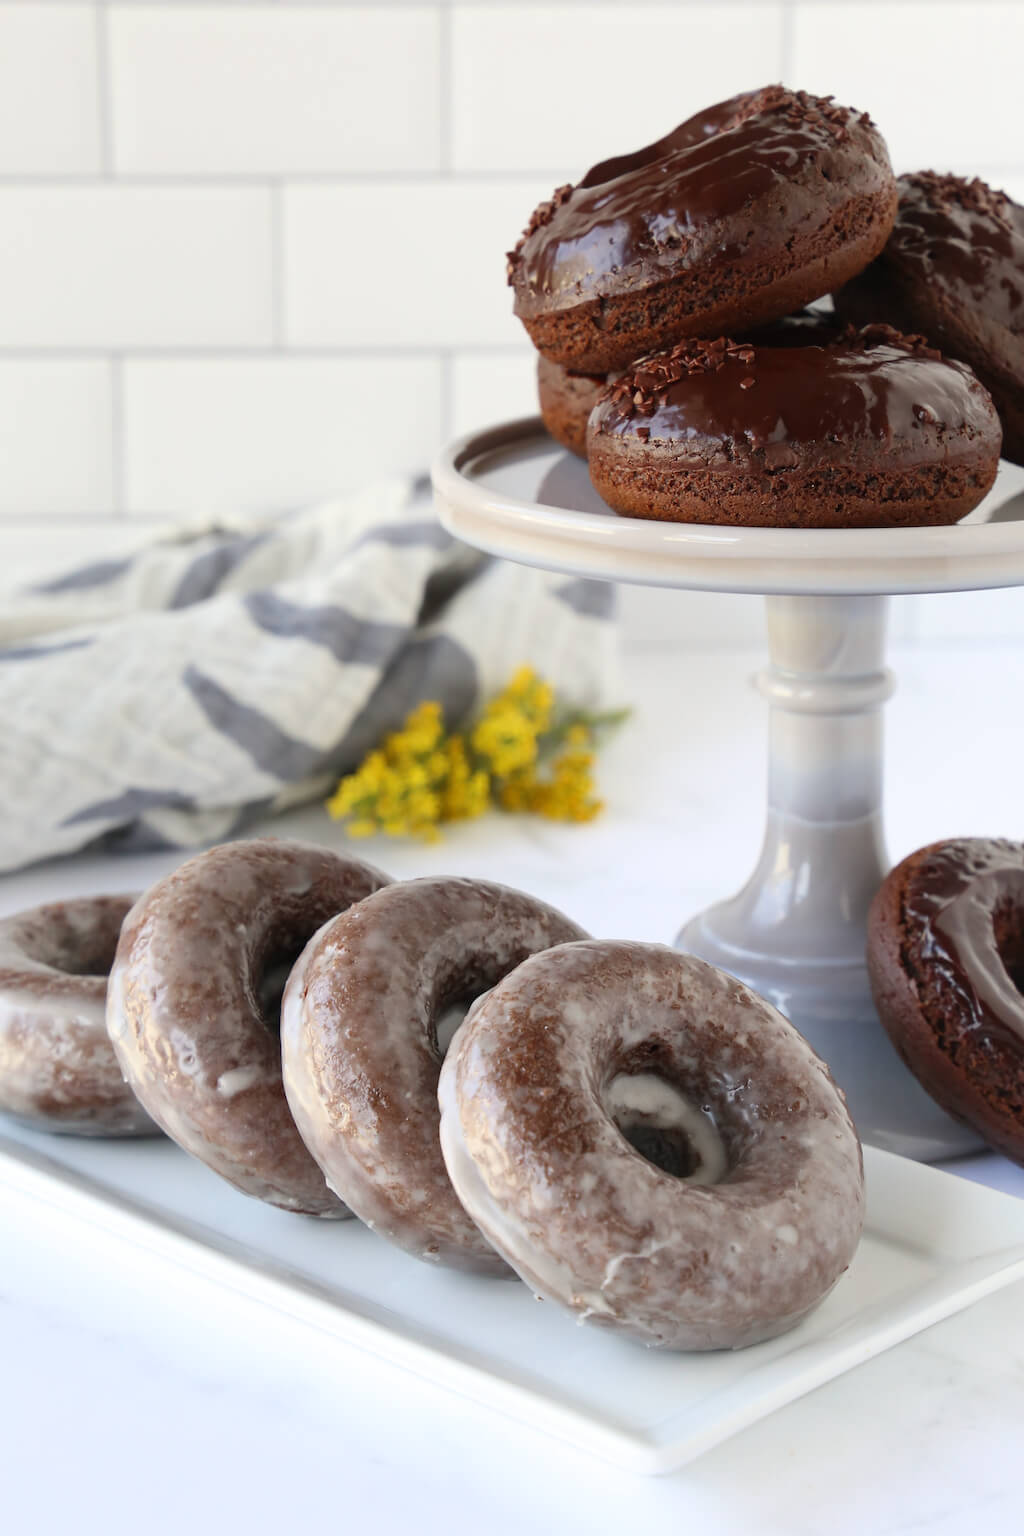 a cake stand stacked with chocolate glazed donuts and a platter of glazed chocolate donuts